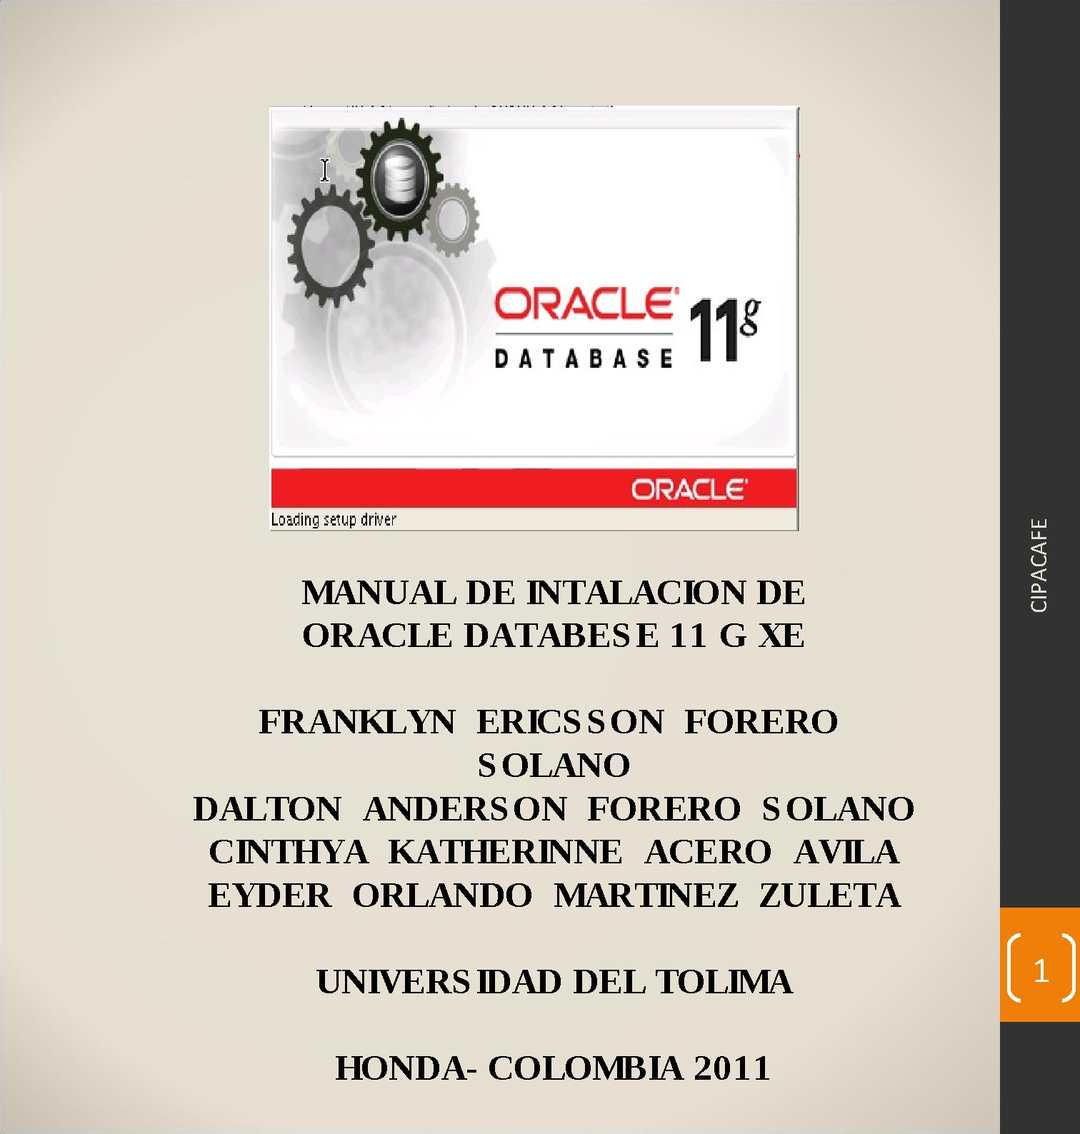 Manual de Instalación de Oracle Database 11 g XE